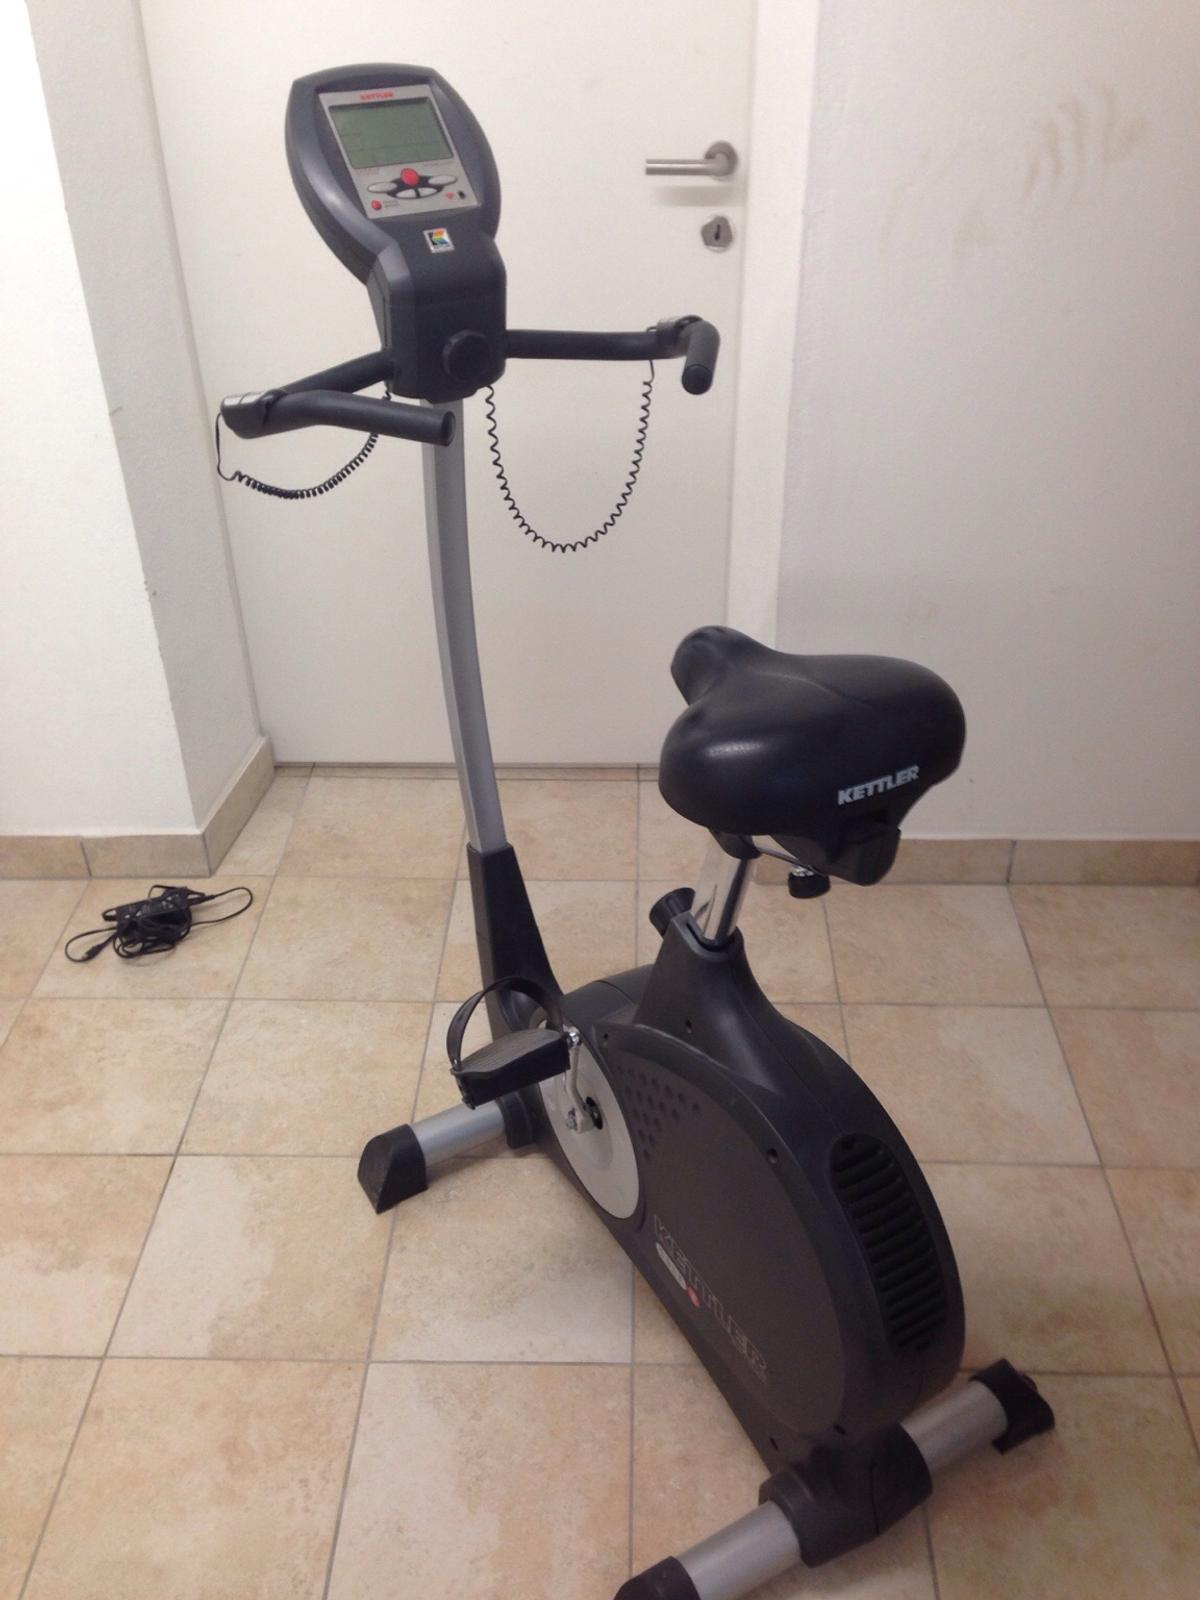 Wonderlijk Kettler Golf E Fitness Fahrrad in 6200 Jenbach for €75.00 for sale QU-04